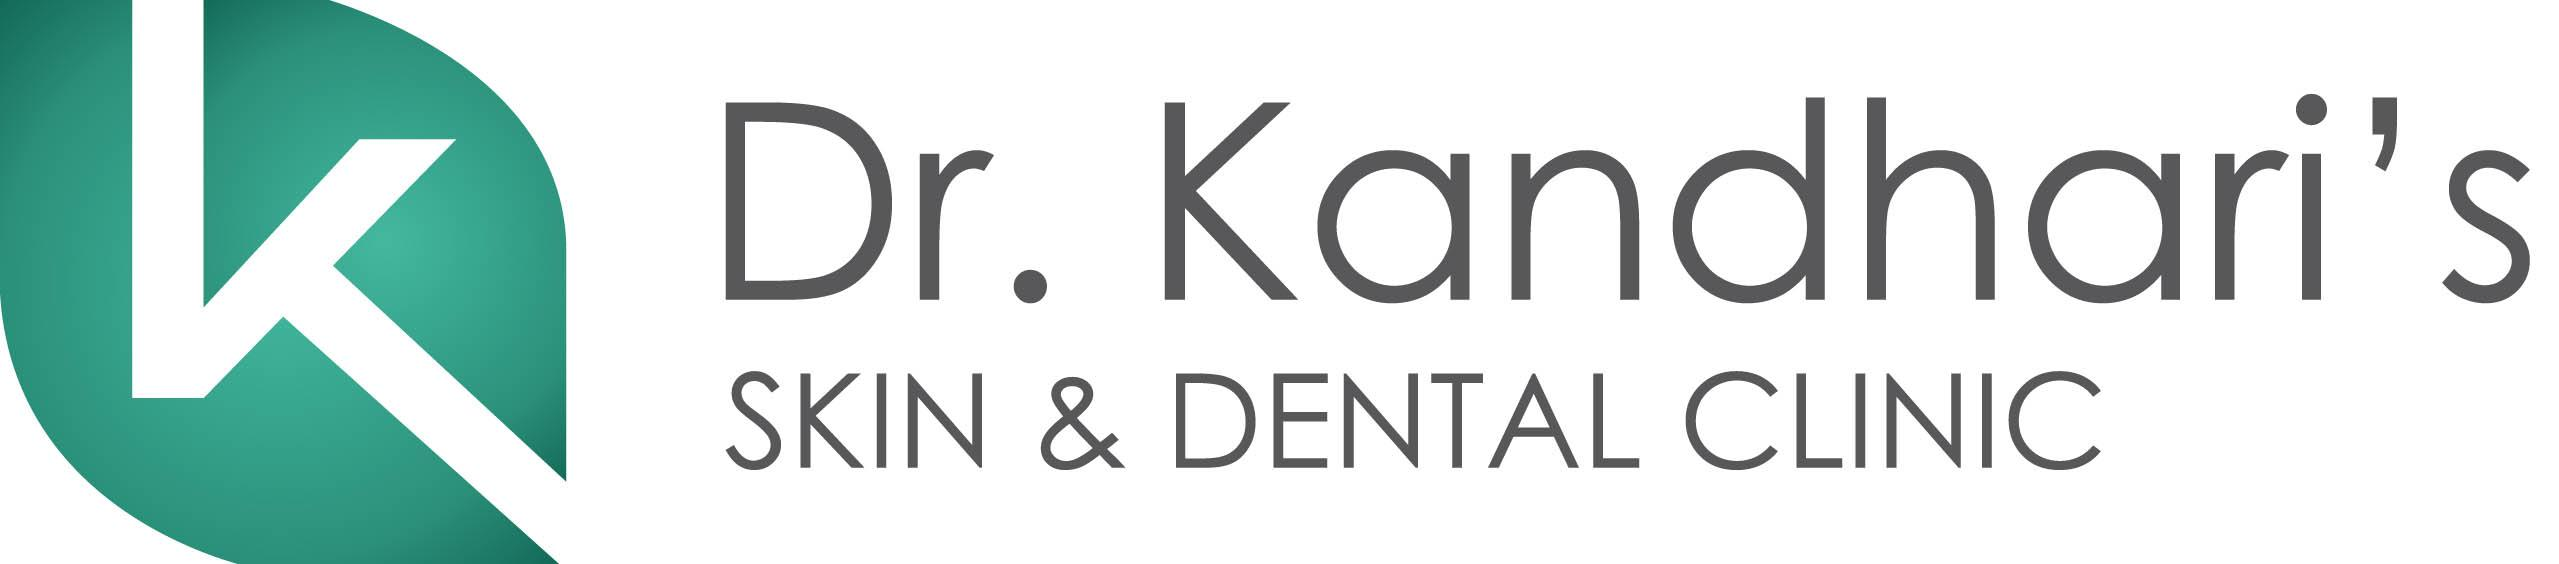 Dr. Kandhari's Skin And Dental Clinic